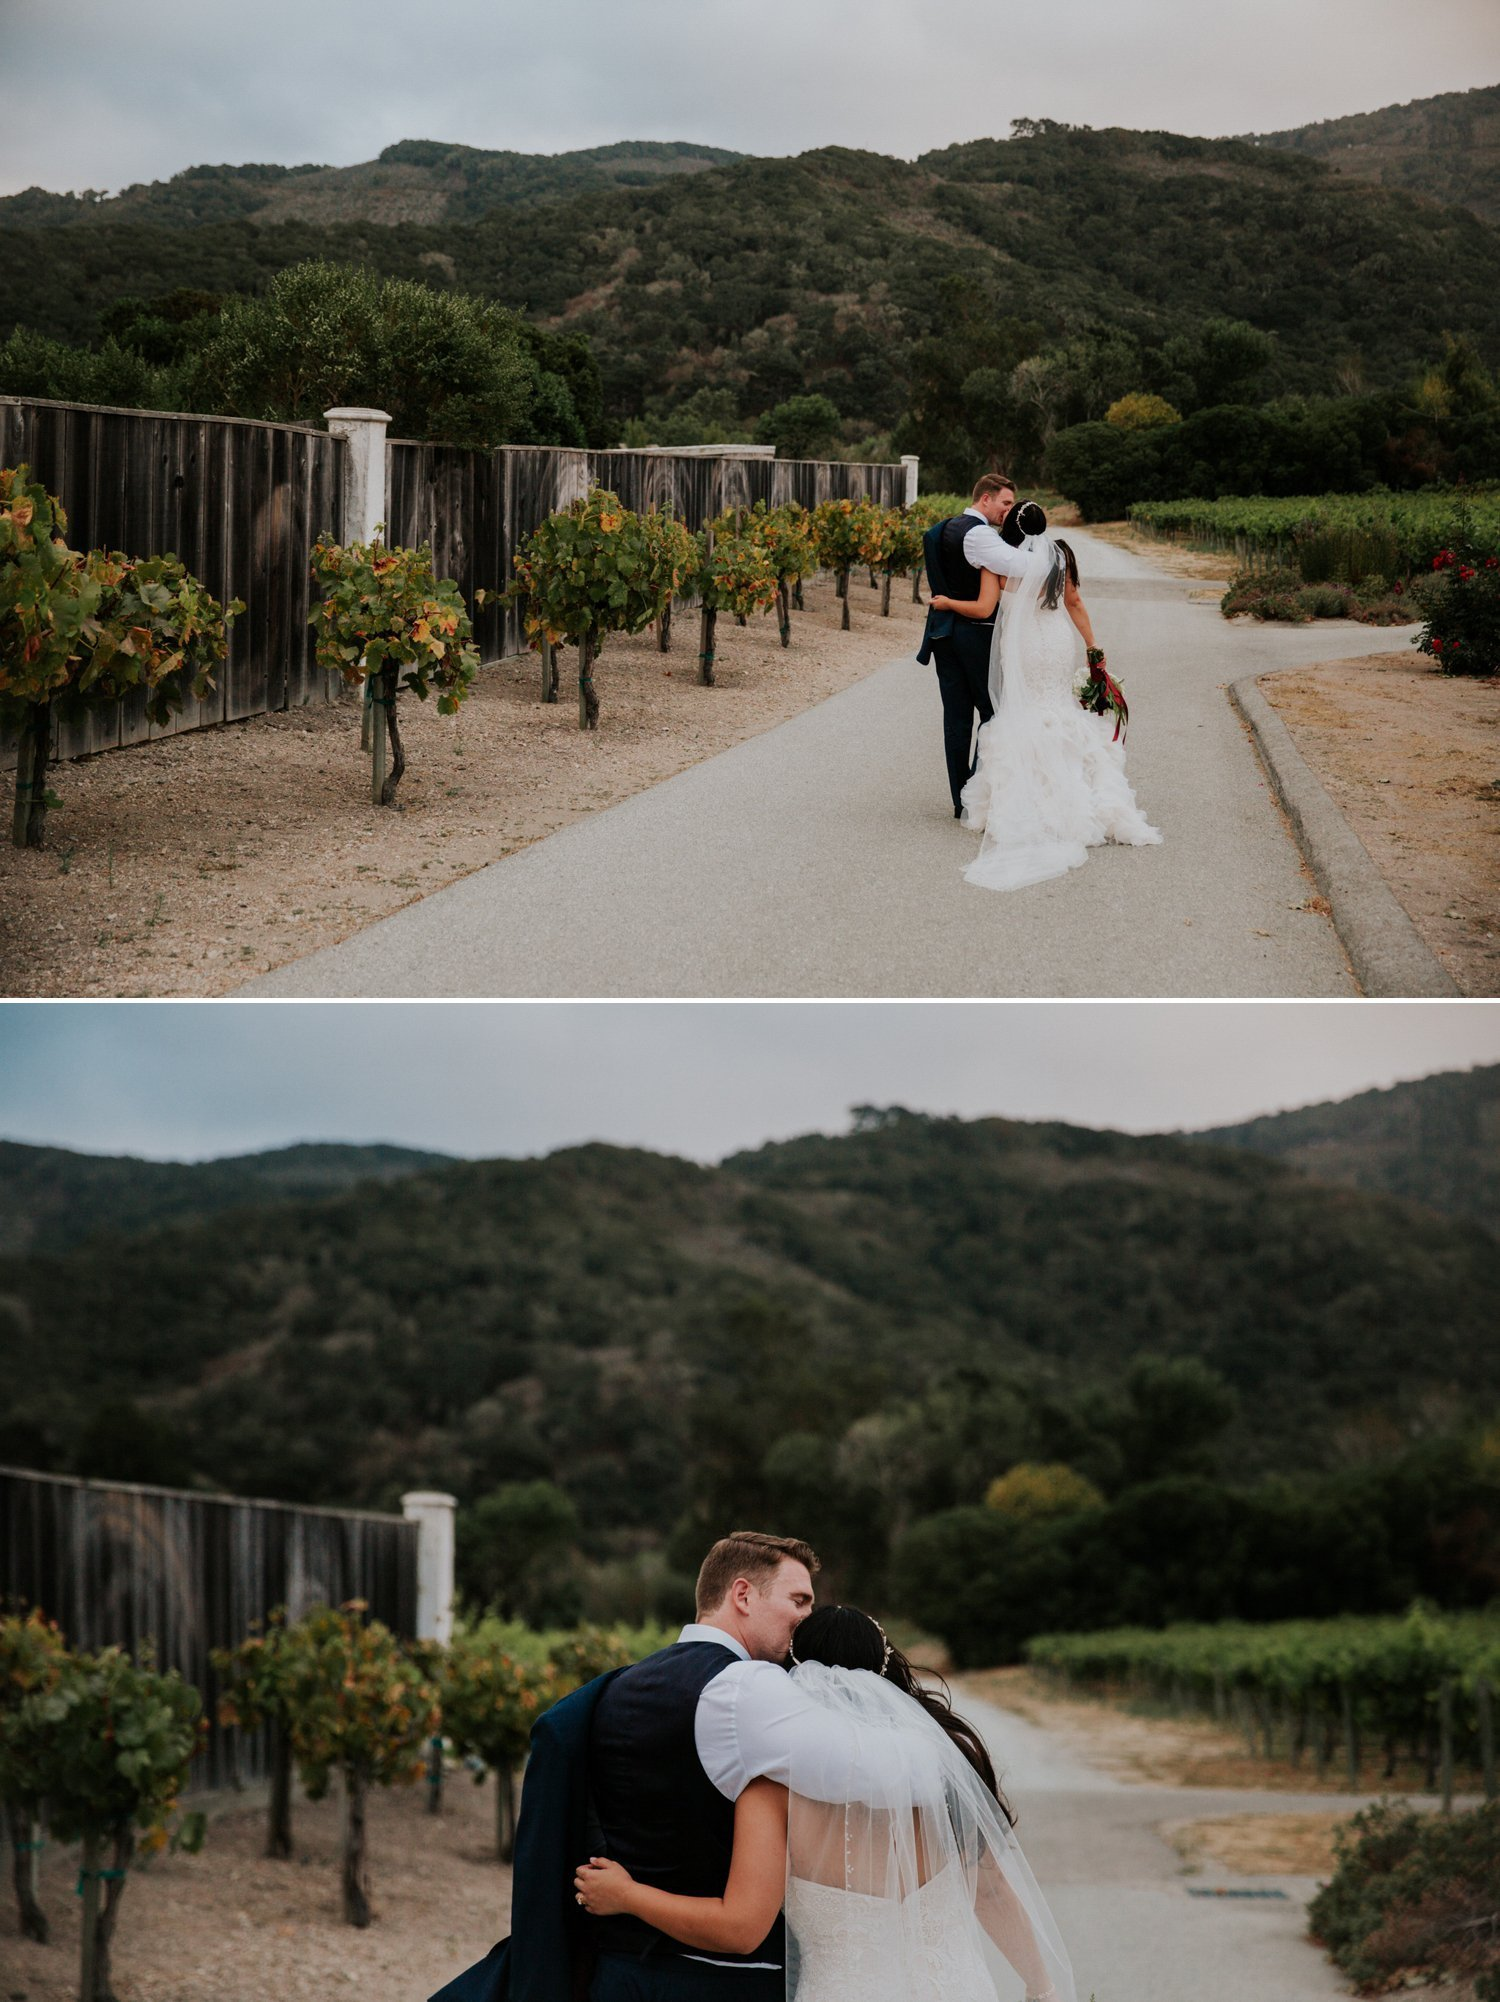 Carmel wedding at vineyard Paige Nelson